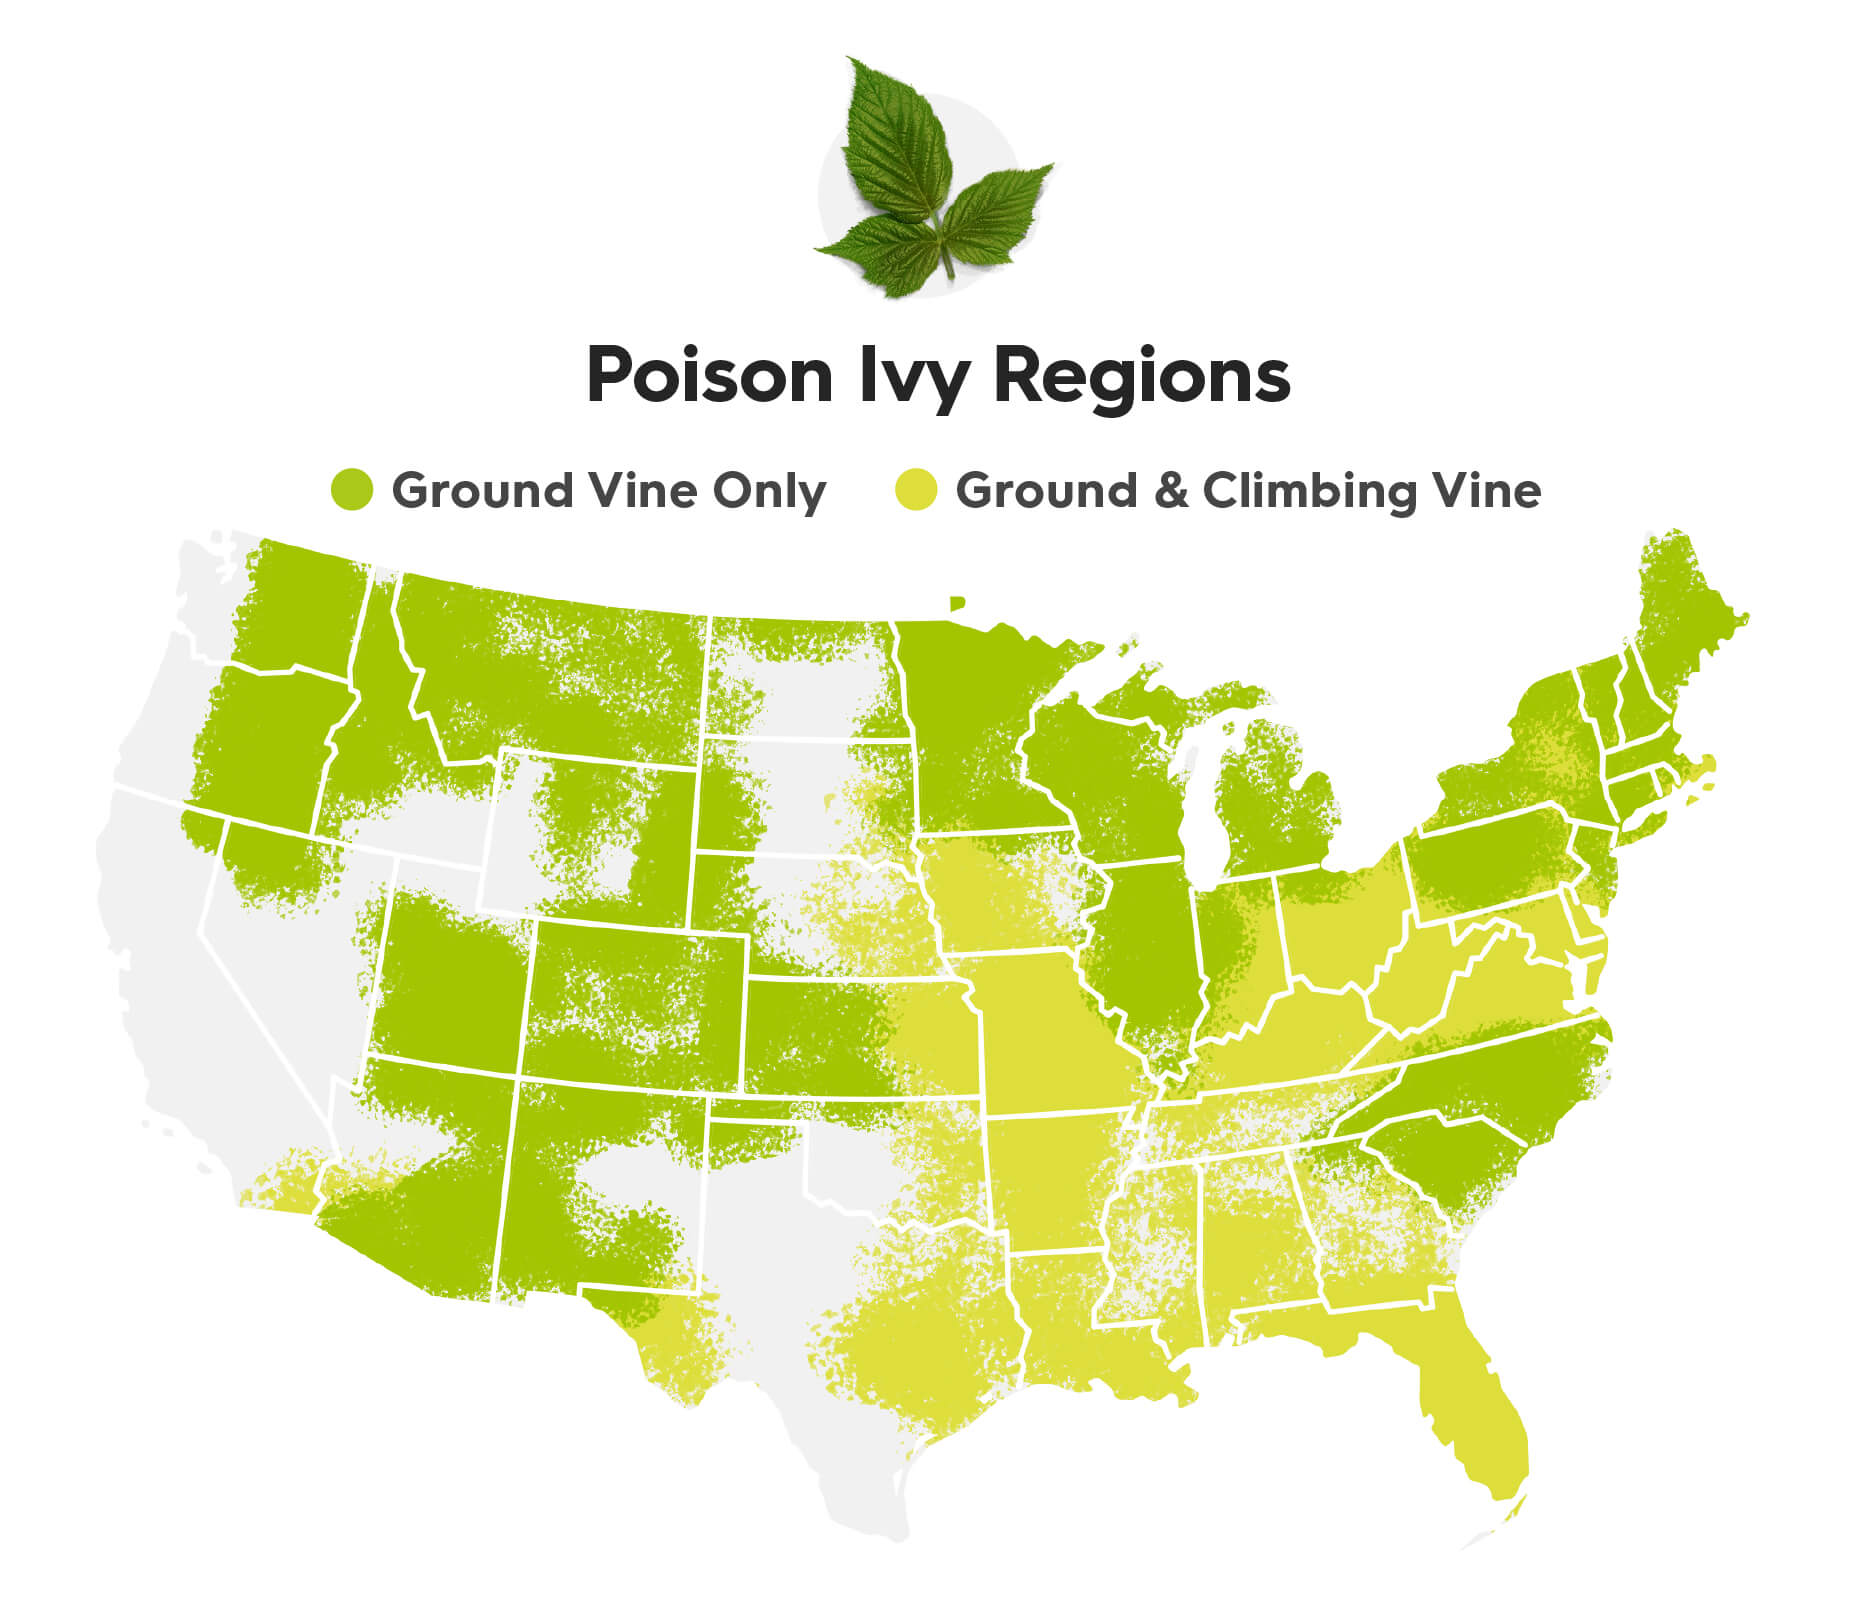 A continental U.S. map showing the regions where the two types of poison ivy grow; ground vine and ground vine with climbing vine. Keep reading to learn where to find each type. The states that only have ground vine poison ivy are: Washington, Oregon, North-eastern tip of California, Most of Idaho, Montana, Most parts of Colorado, Utah, north-western corner of Nevada, most of New Mexico and Arizona, the western and northern edge of Texas, some parts of the Dakotas, the western part of Nebraska, all of Minnesota, Wisconsin, Michigan and Illinois, most of New England, and lastly, North and South Carolina. The states that have both ground vine and climbing vine poison ivy are: the southern tip of California, the south-western edge of Arizona, the south-western edge and eastern edge of Texas, eastern part of Nebraska, Most of Iowa, Missouri, Arkansas, Louisiana, Indiana, Ohio, Kentucky, West Virginia, Virginia, Washington DC, Maryland, Delaware, Tennessee, Mississippi, Georgia, Florida, and lastly Alabama.